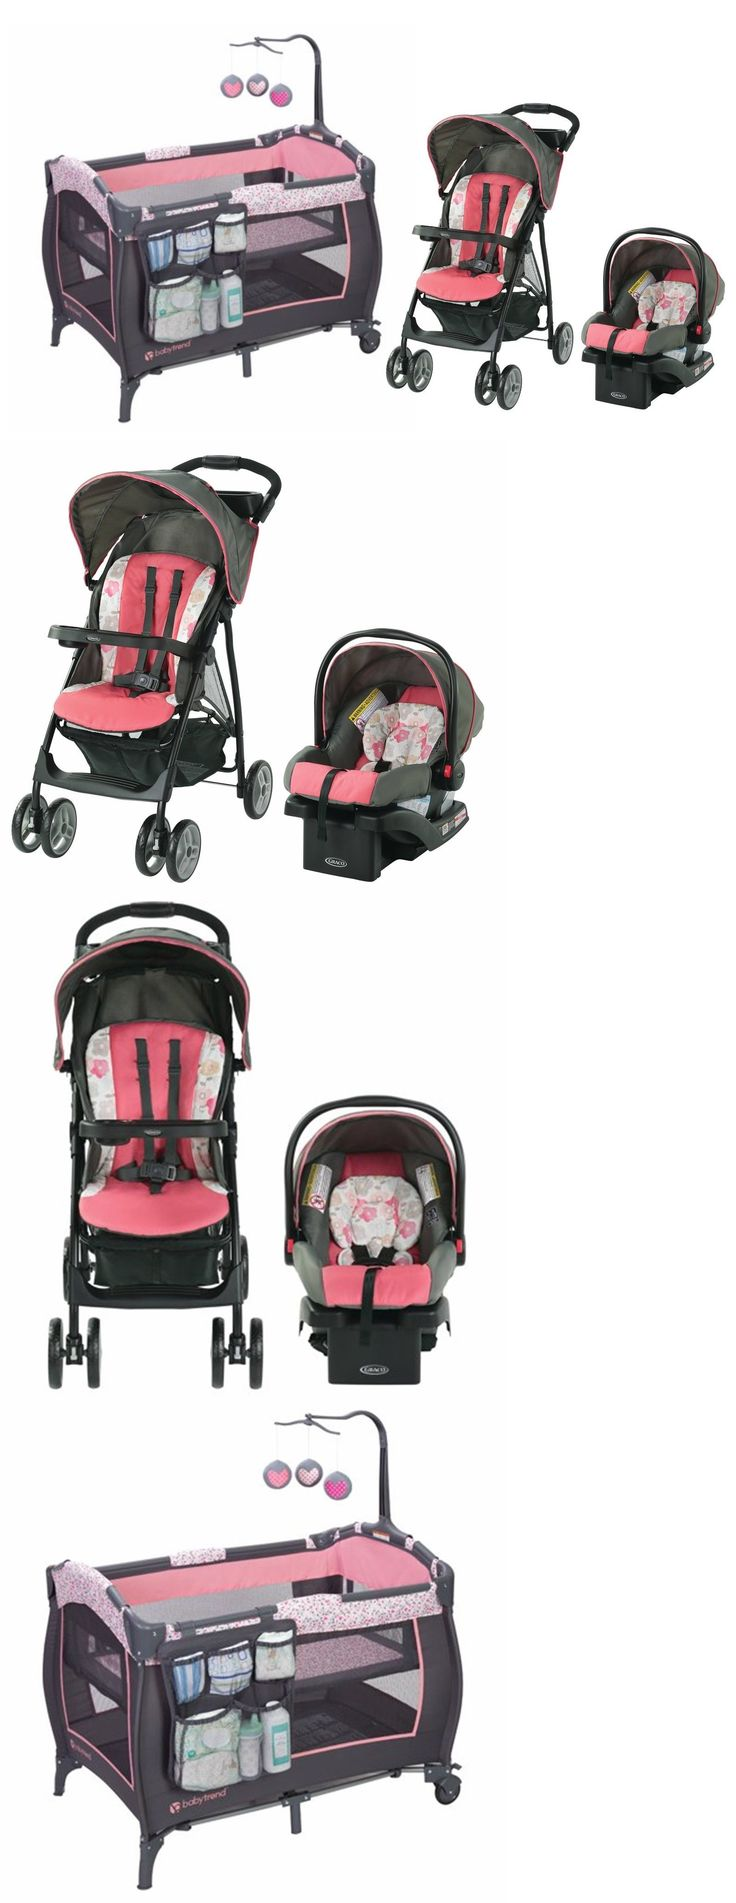 Details about Graco Baby Stroller with Car Seat Baby Trend